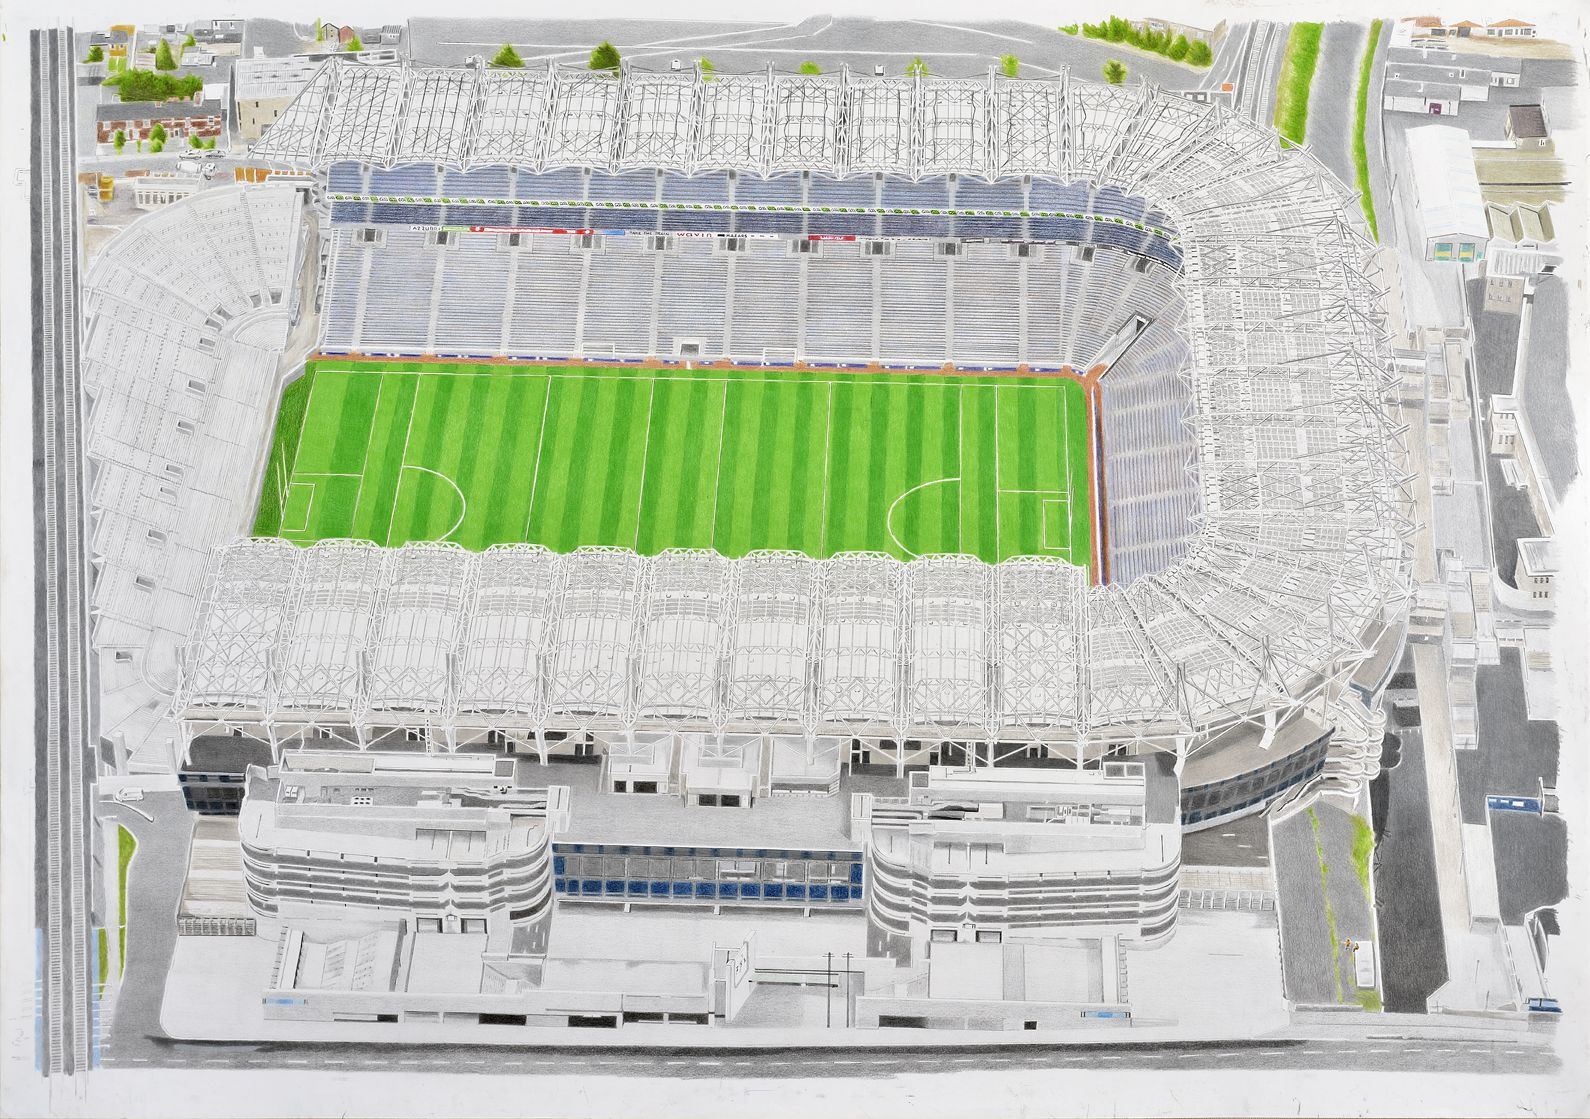 Croke Park Home Of The Gaelic Football Association By Brian Casey Available On Fantastic Merchandise Www Sports 3d Printed Metal Box Frames Fridge Magnets